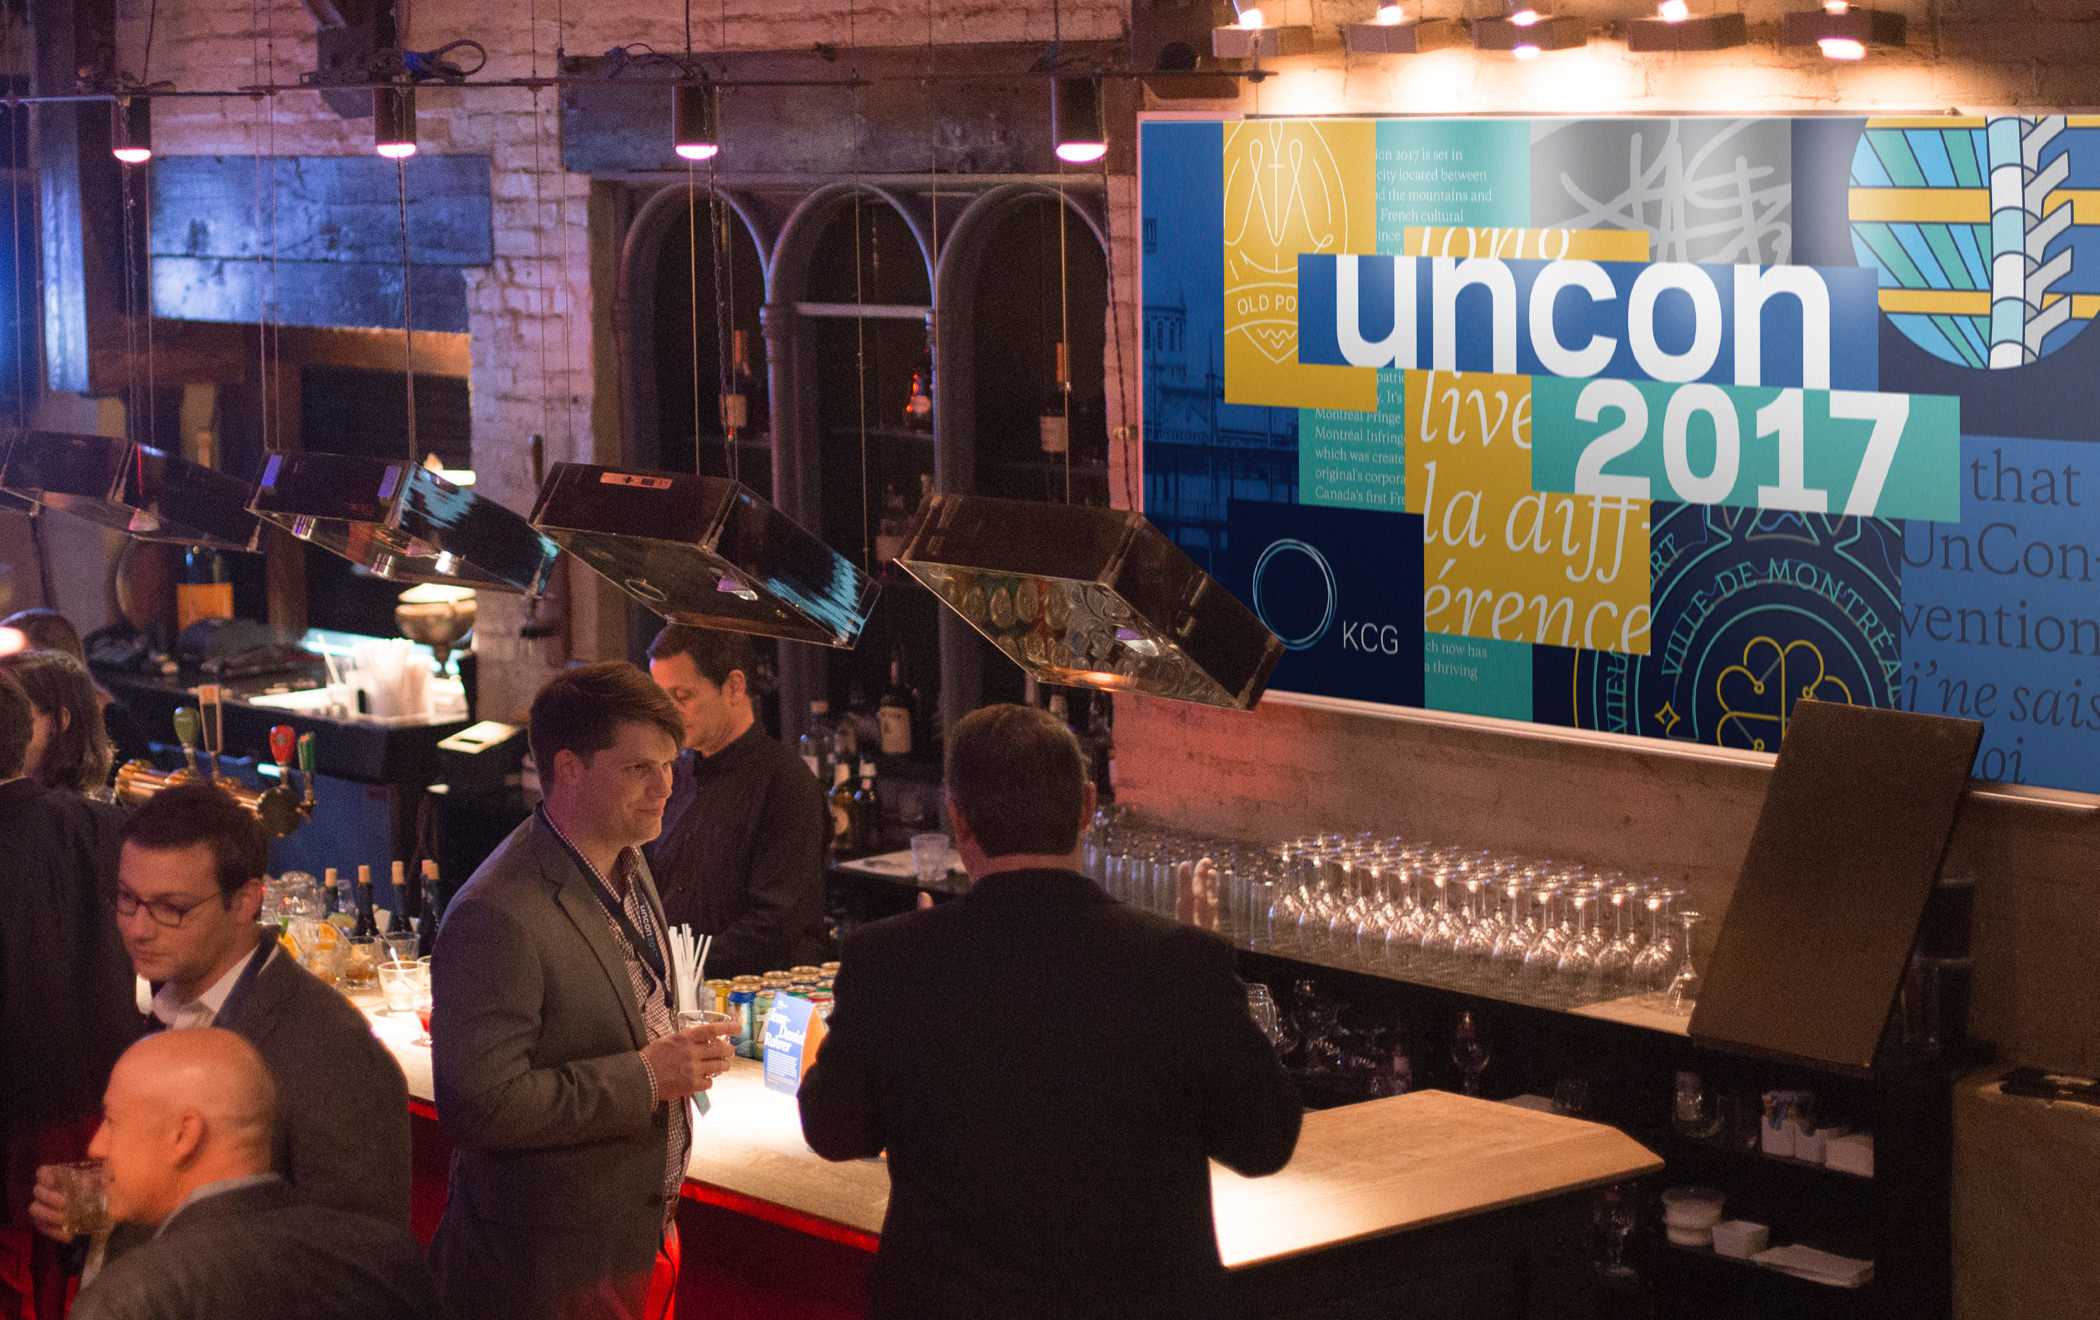 Attendees enjoying drinks near the bar during a cocktail reception at the 2017 KCG Uncon client event.